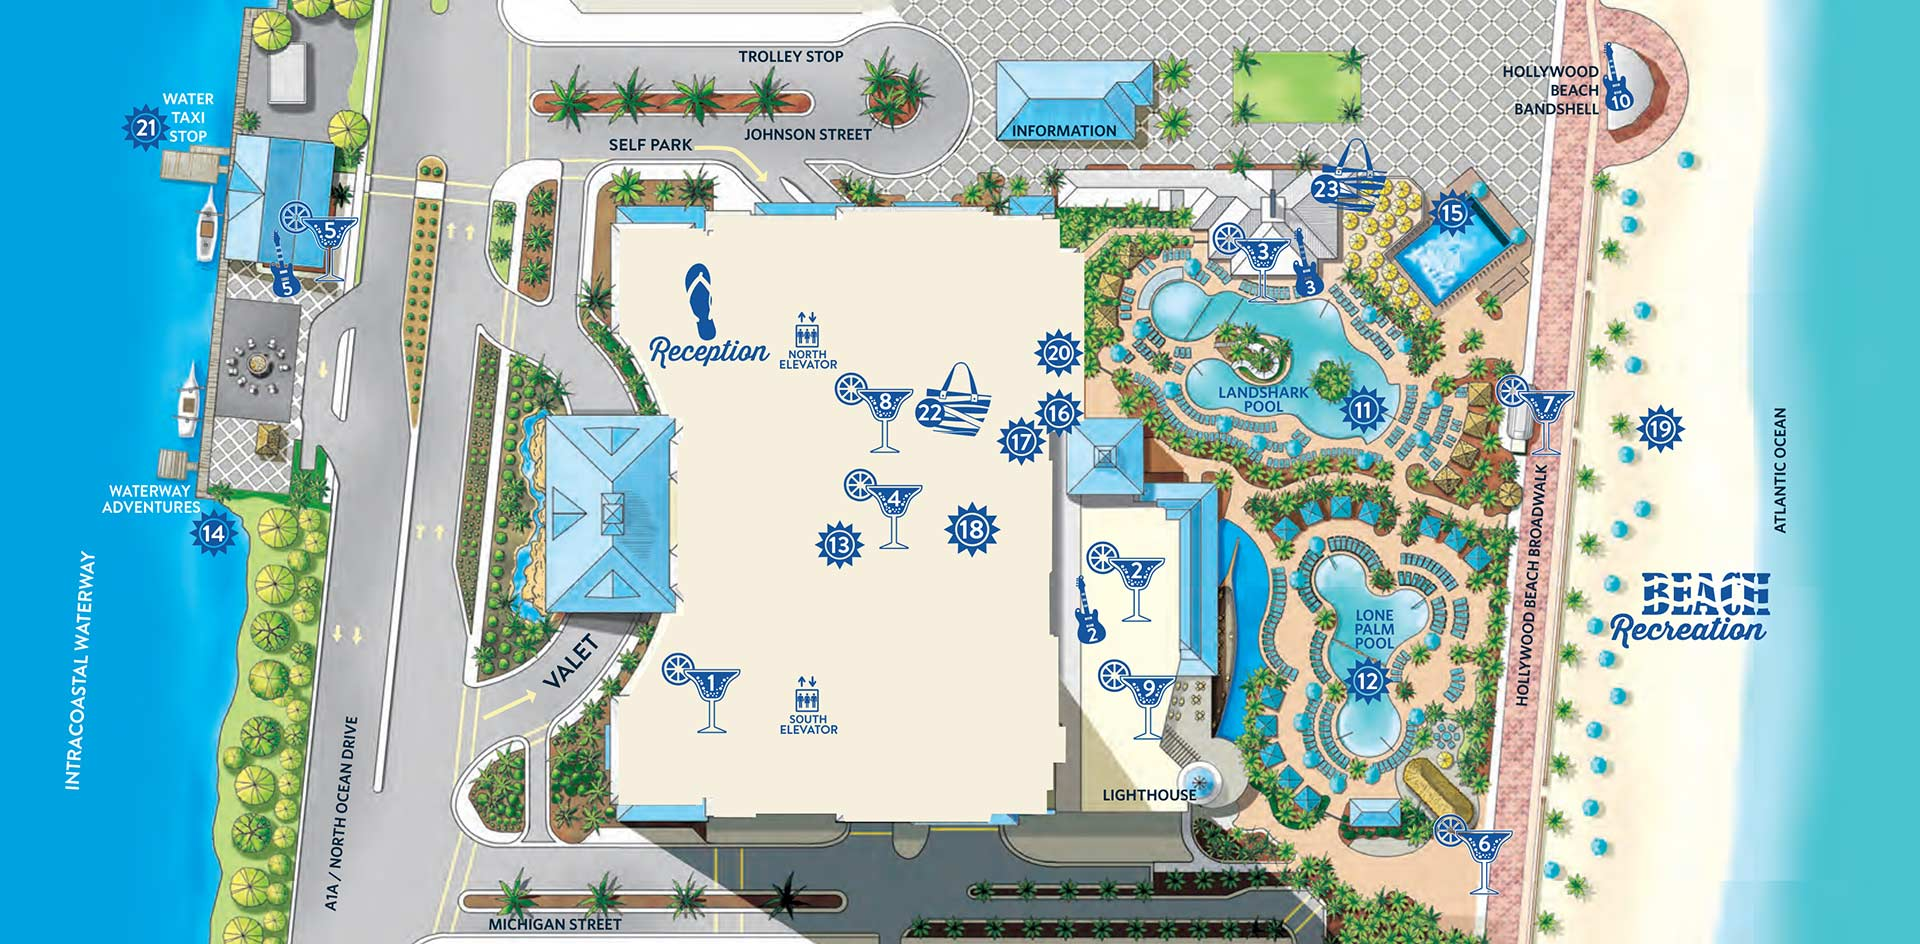 Birdseye illustration of the resort. Visually impaired customers please call for assistance